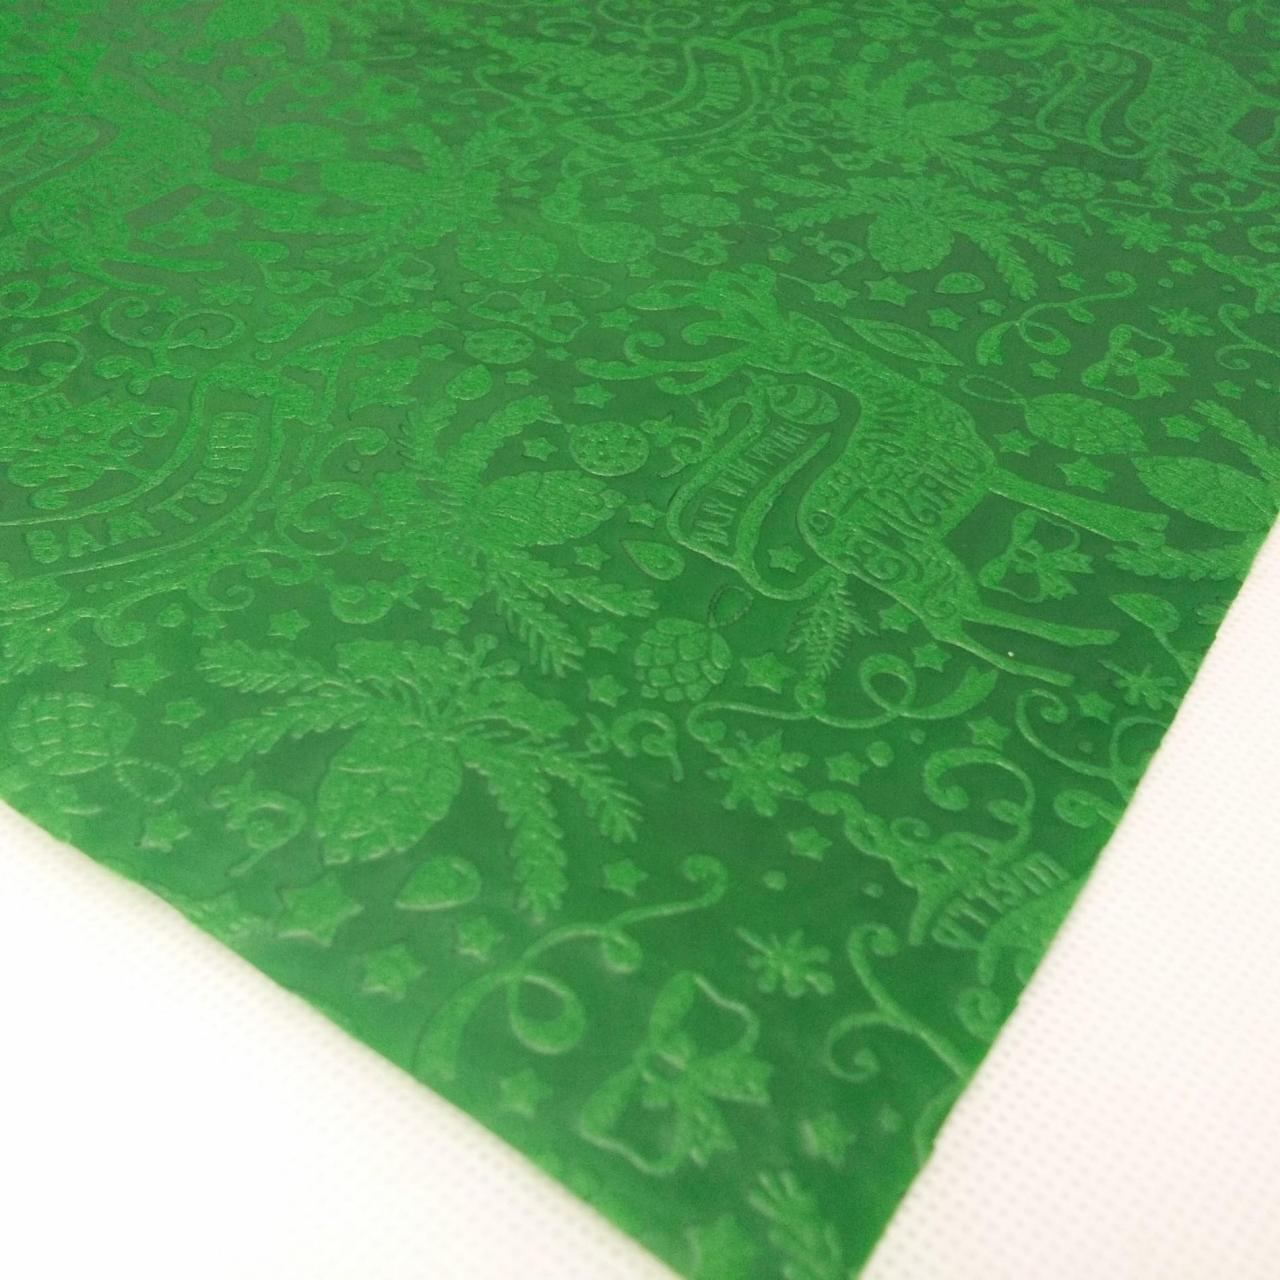 Factory Supply PP Embossed Non woven Table Cloth for Christmas/Own Desig Manufactures